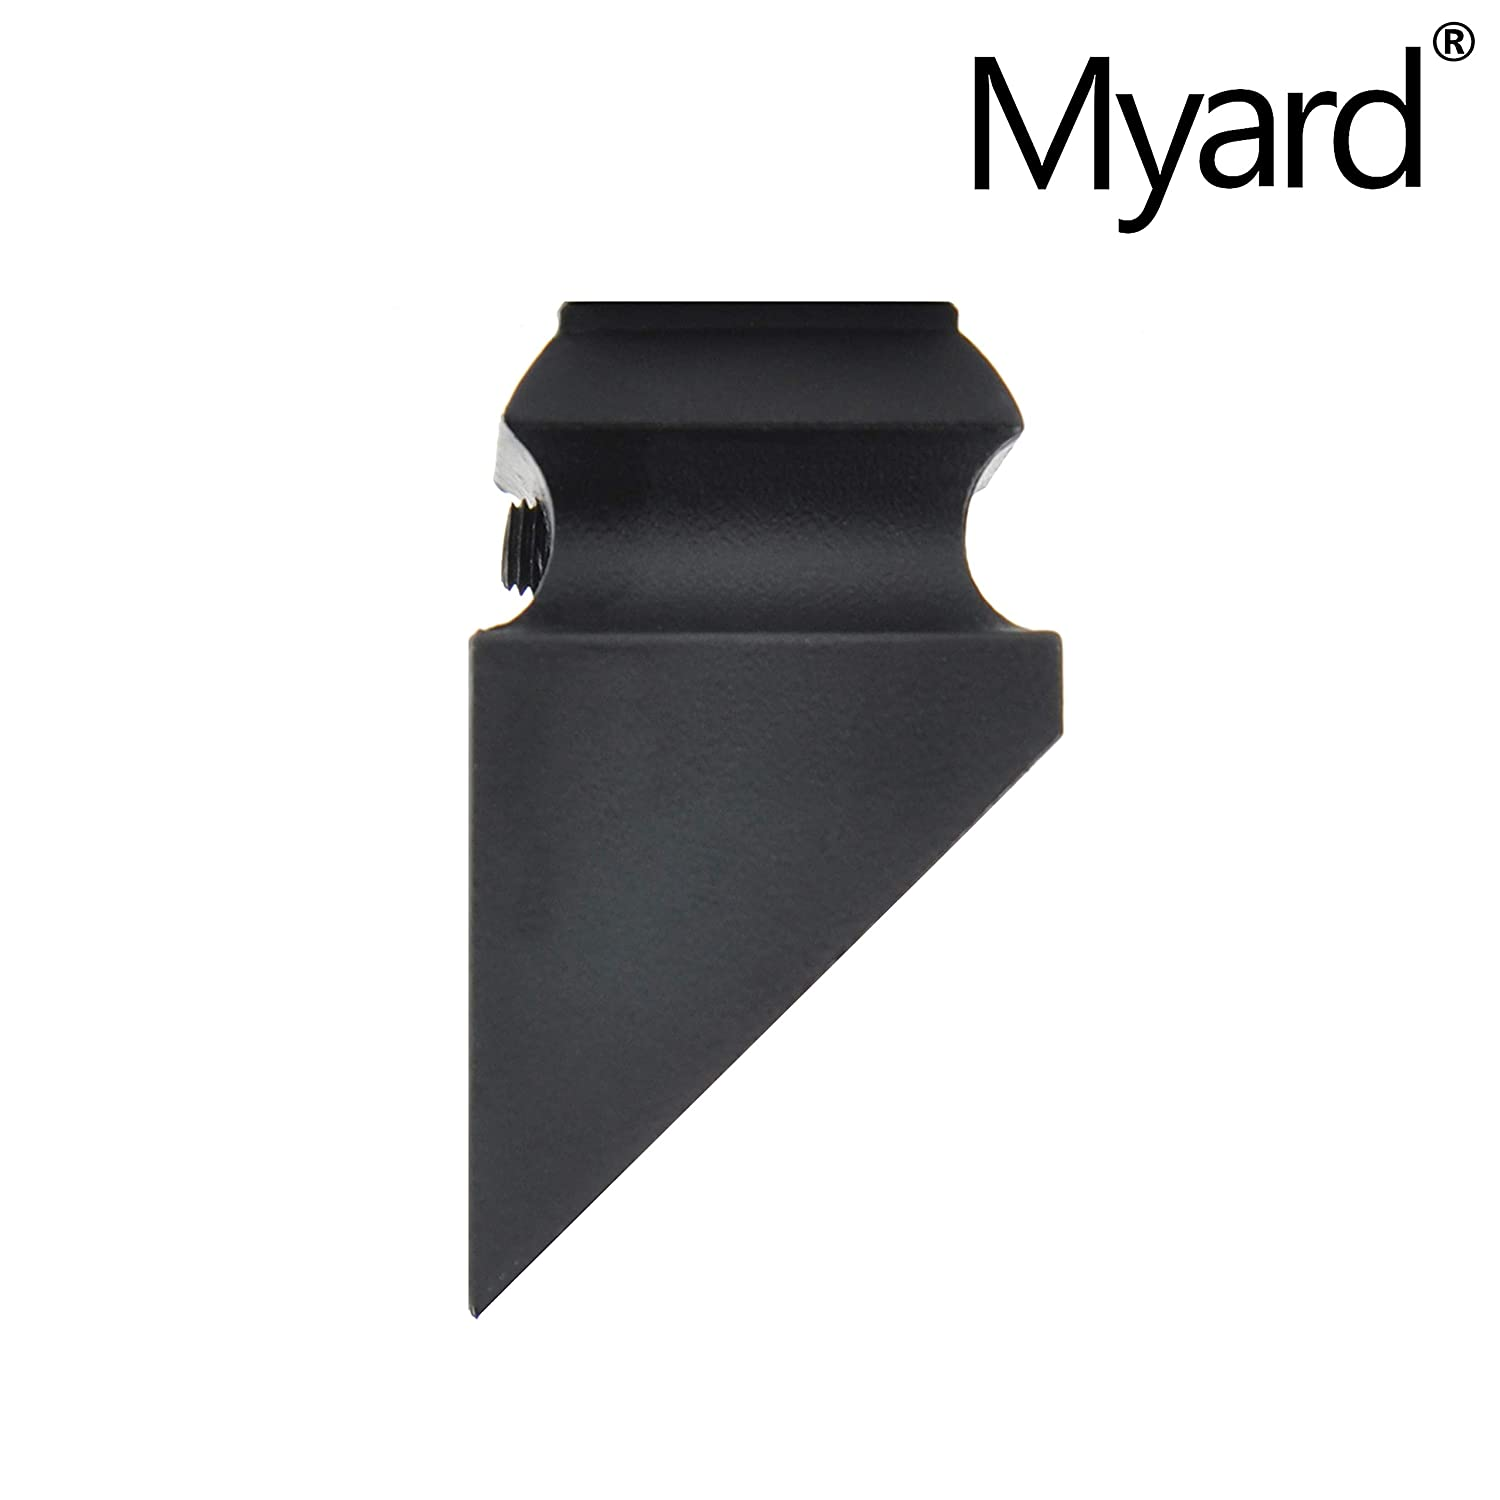 Oil-Rubbed Copper 44 Satin Black Myard Pitch Angled Slant Shoes with Screw for 1//2 Square Iron Stair Balusters 10-Pack